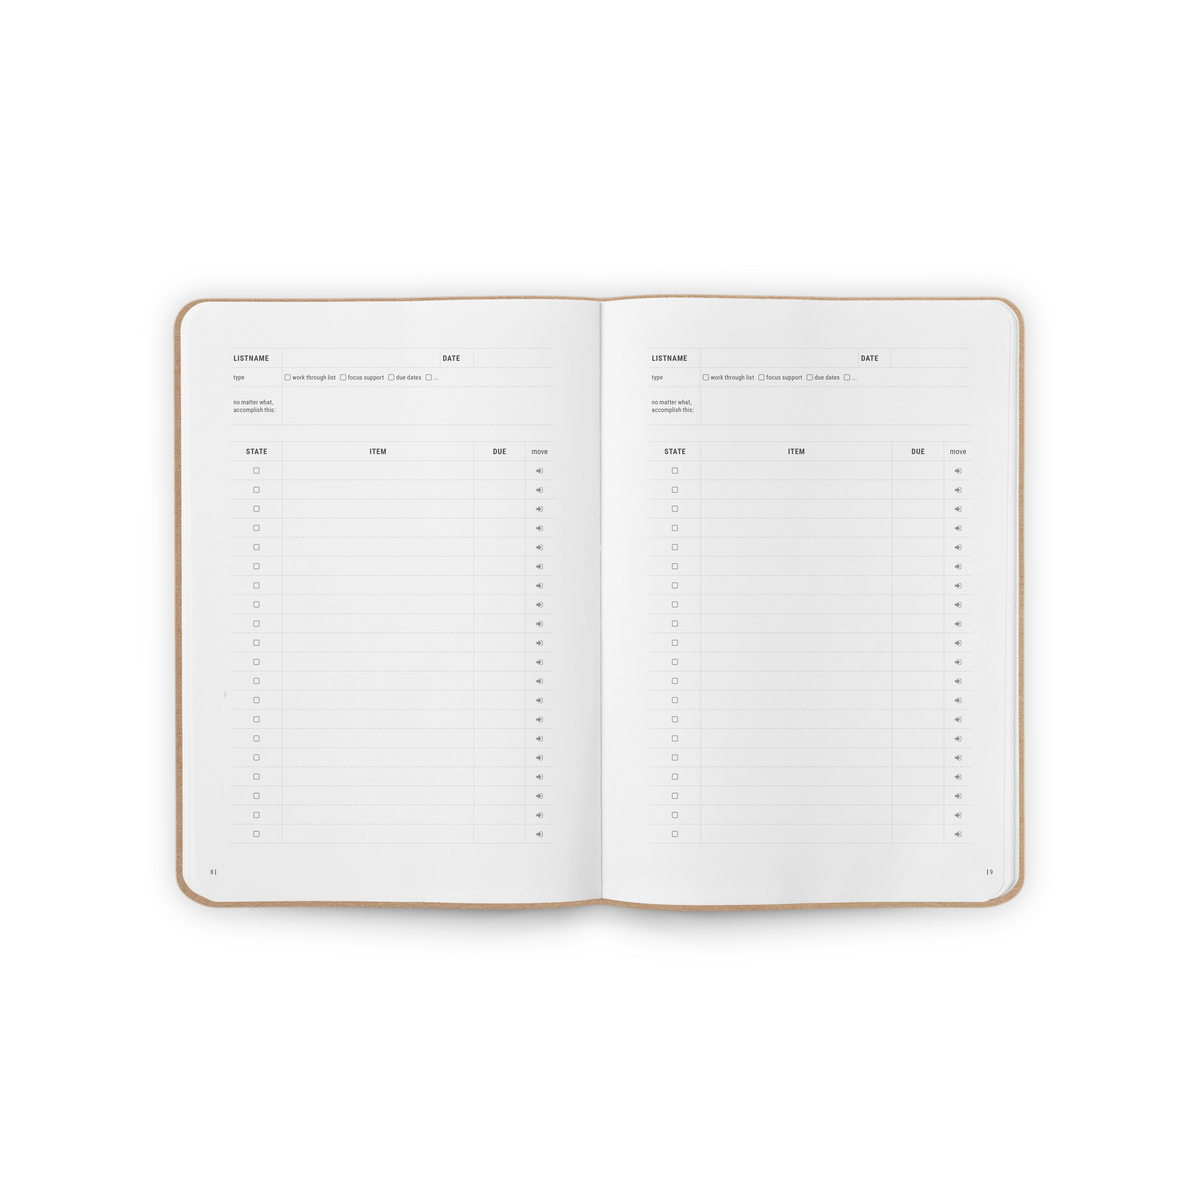 B-105_Bulletjournal-Notebook_Journal_Notebook_Spread